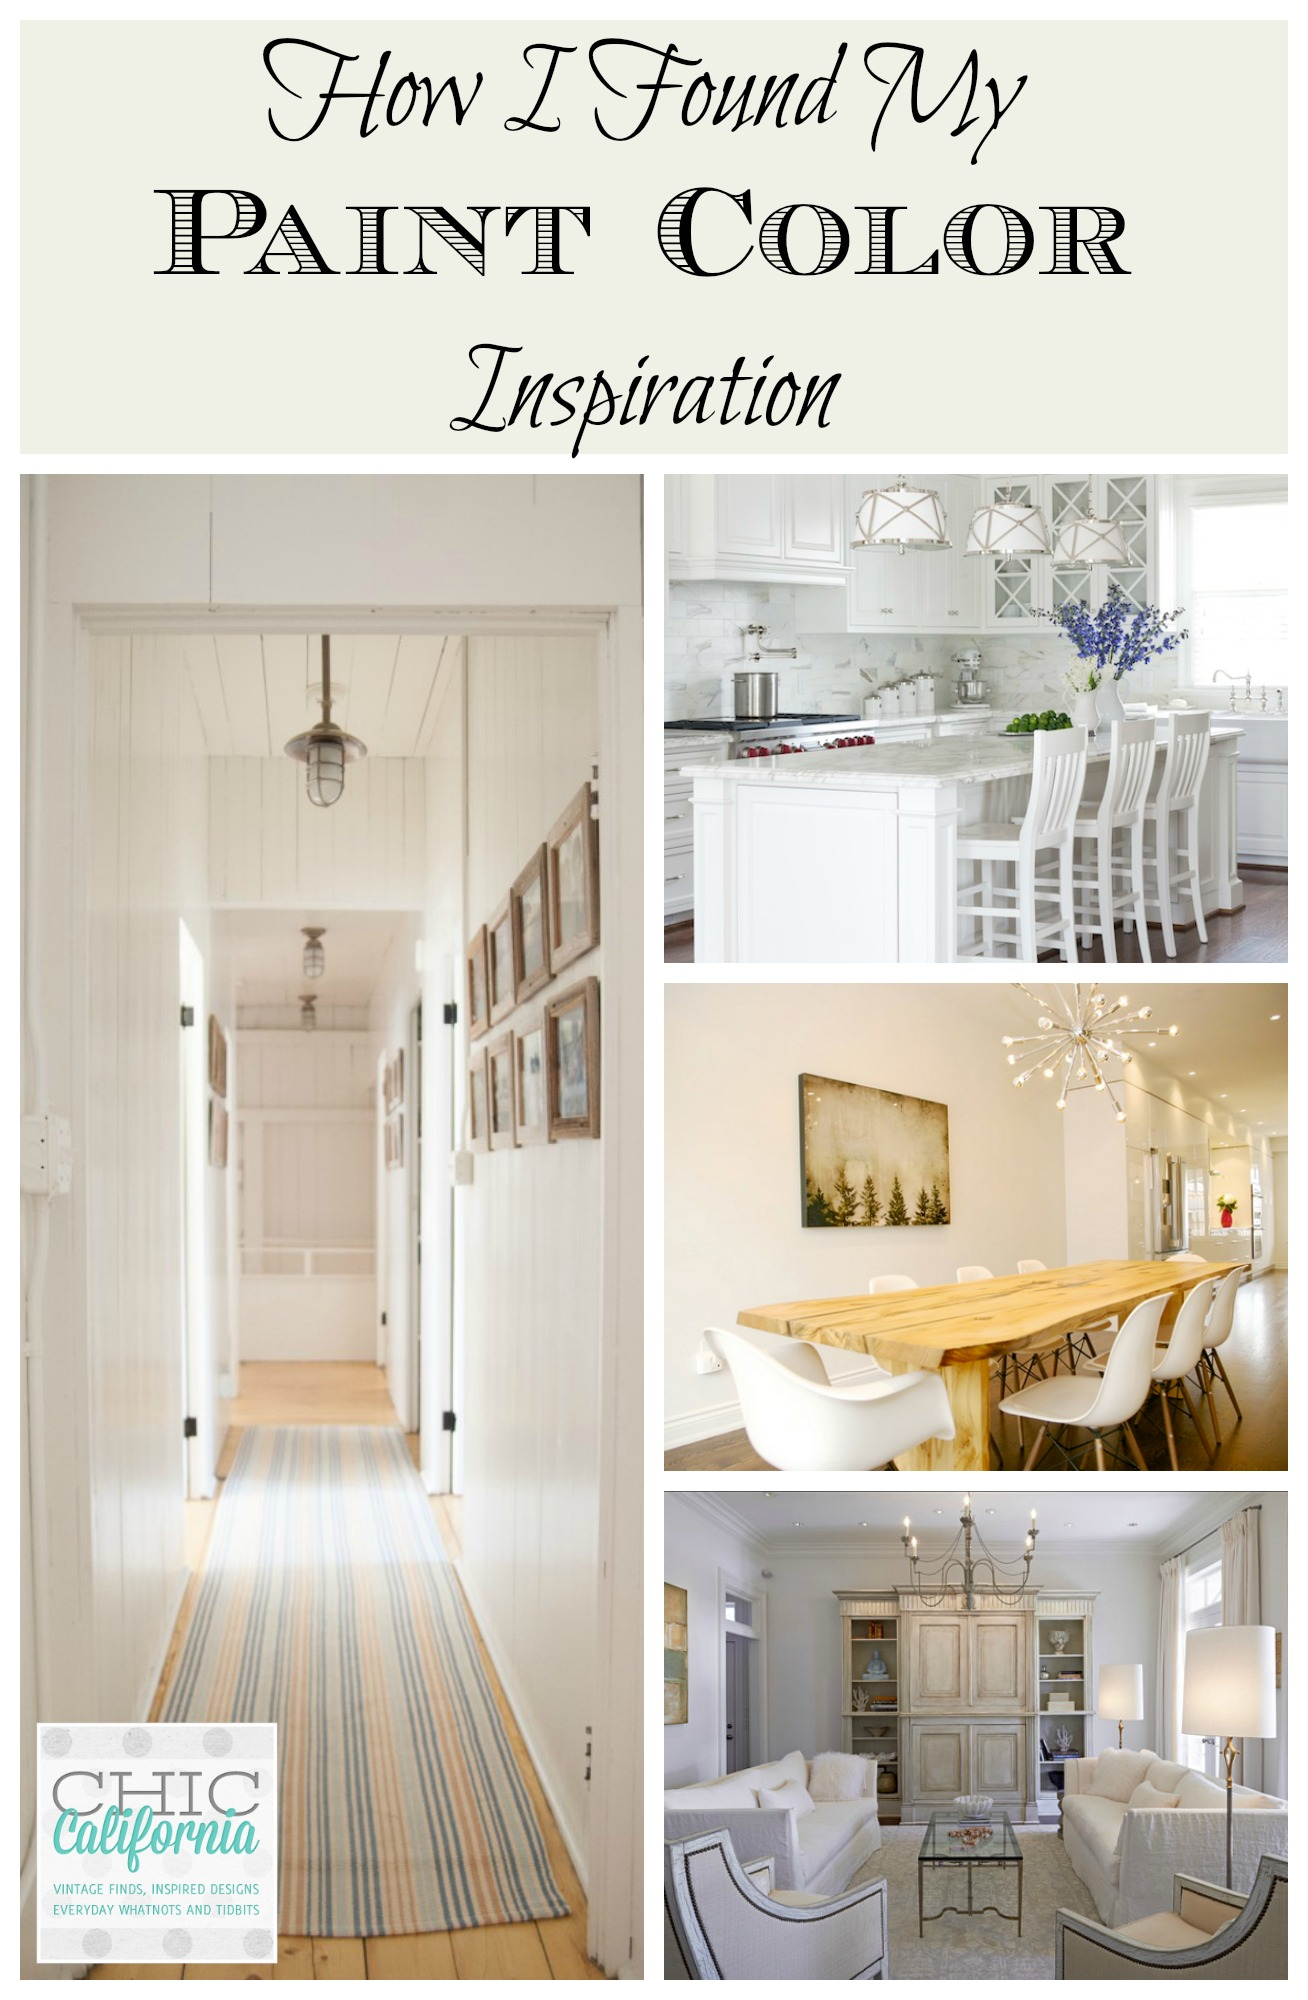 How I found my paint color inspiration